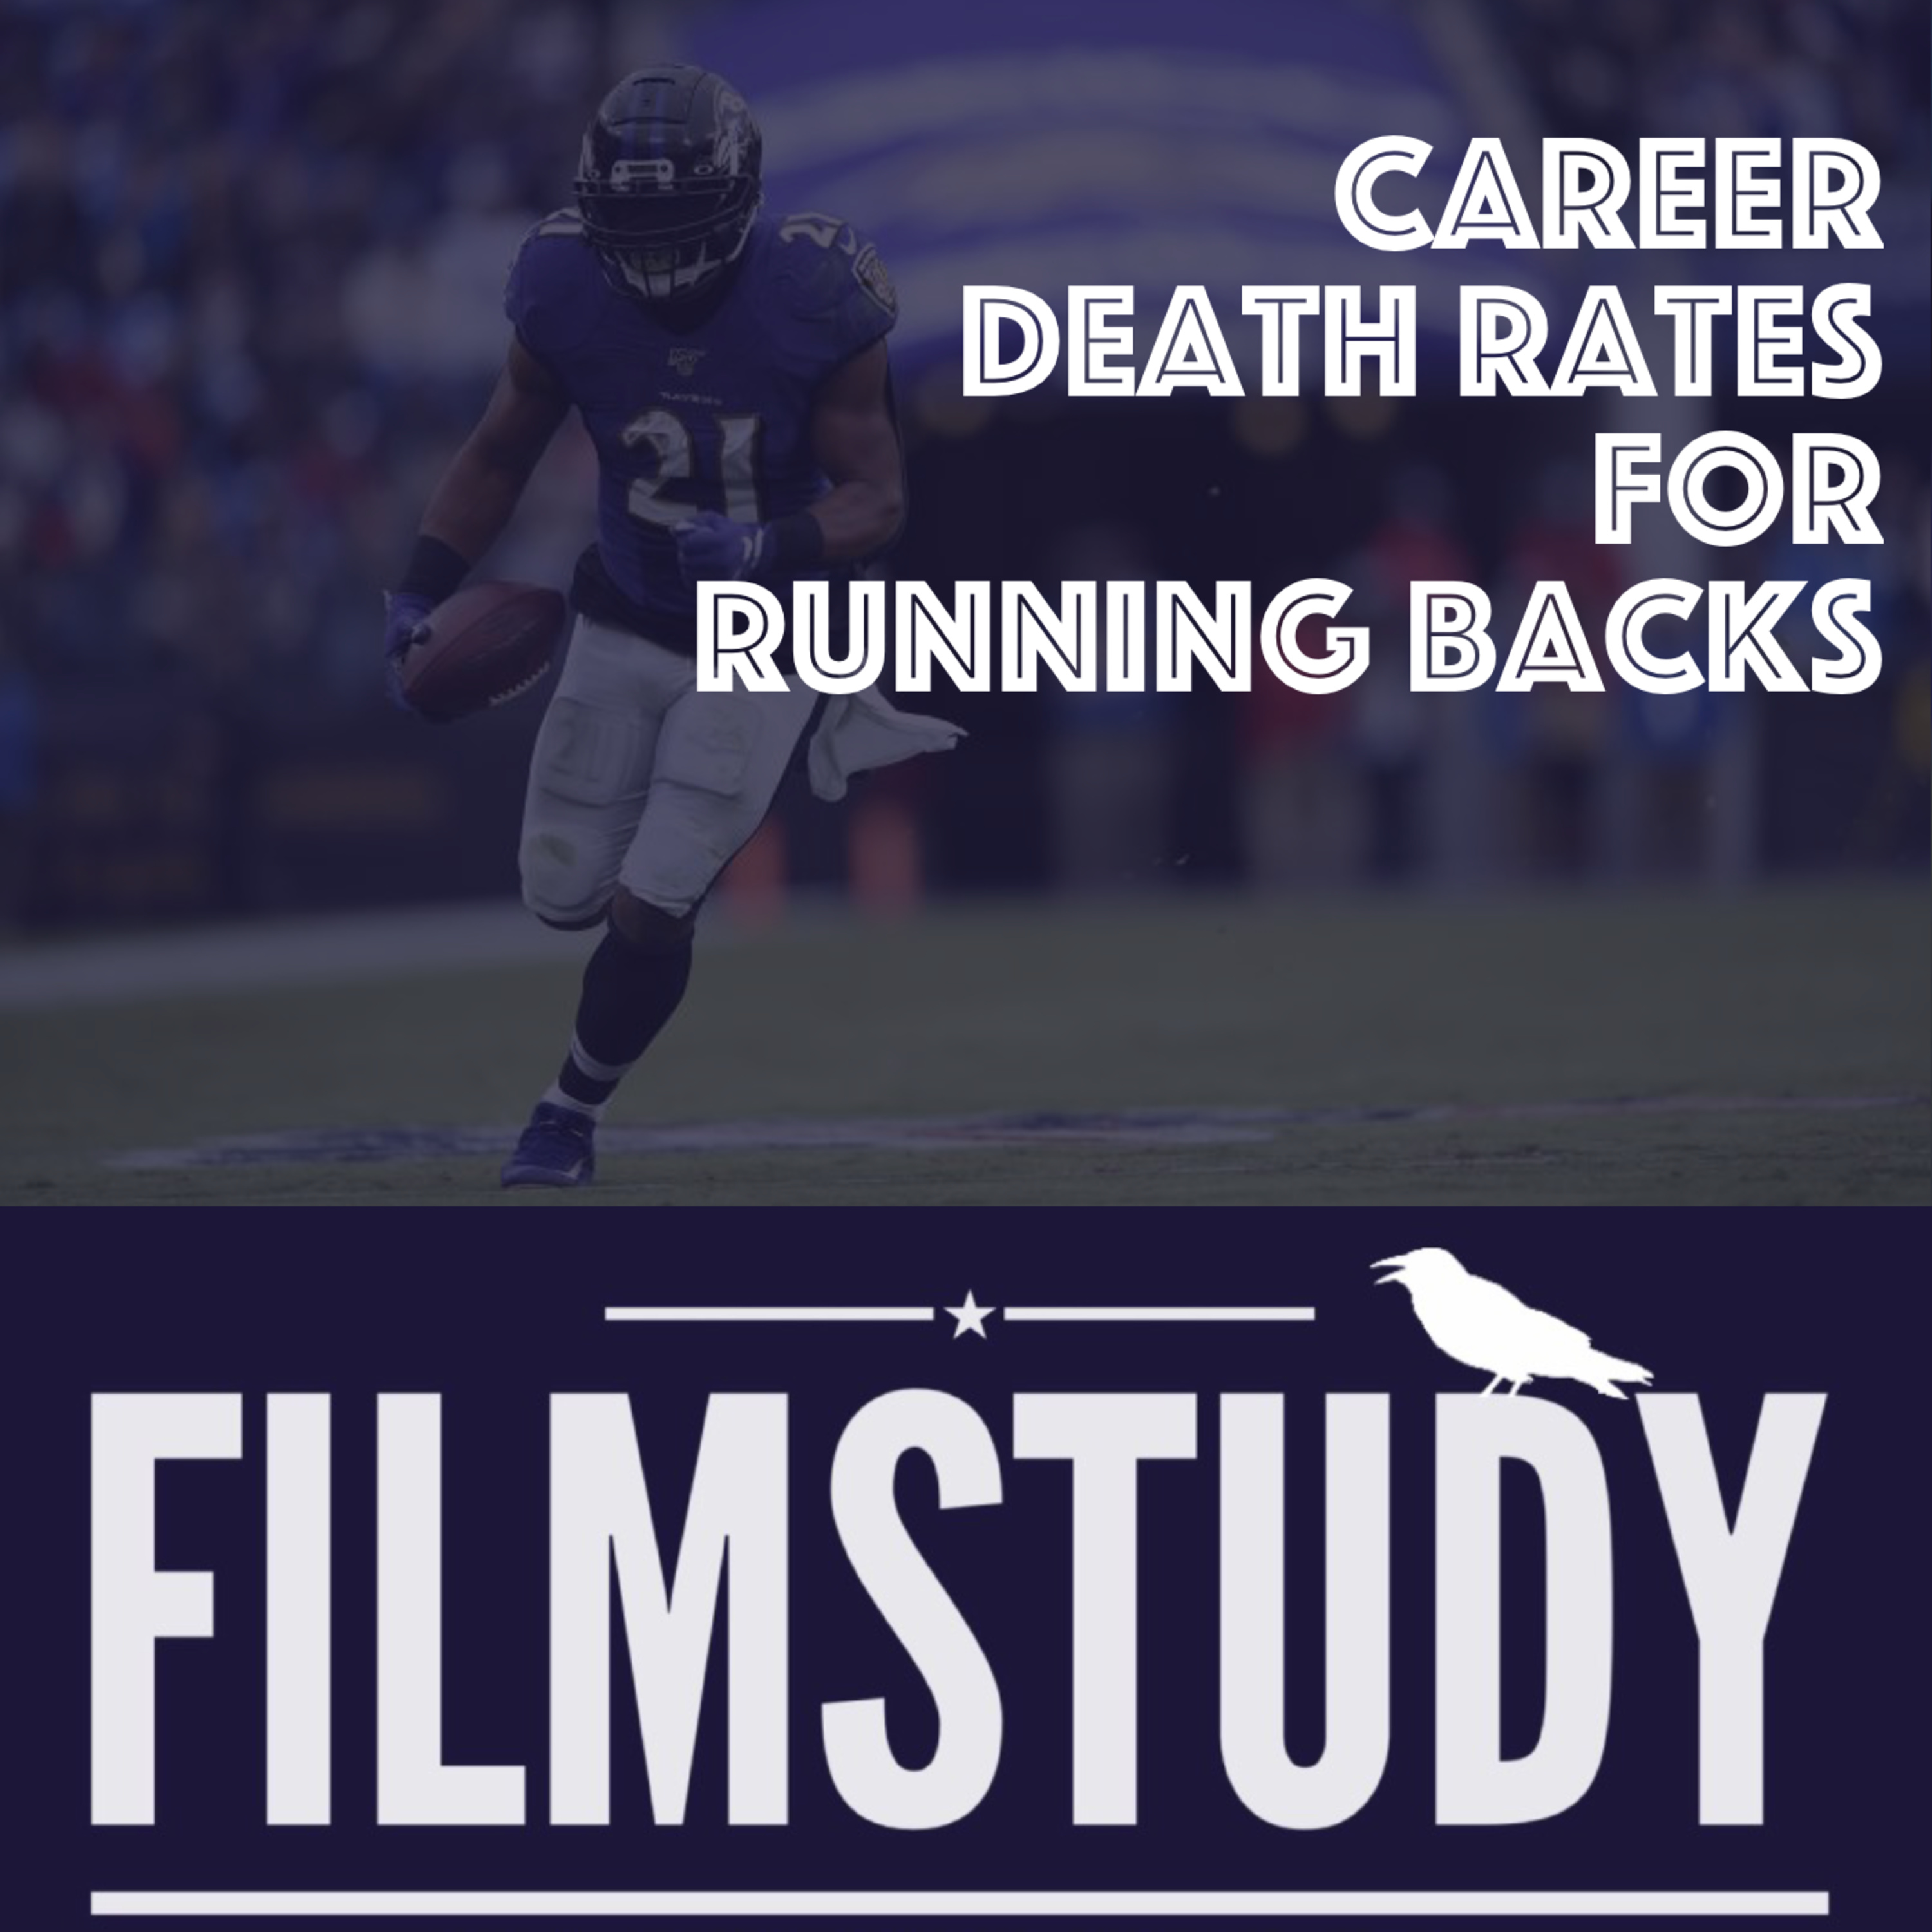 Career Death Rates for Running Backs